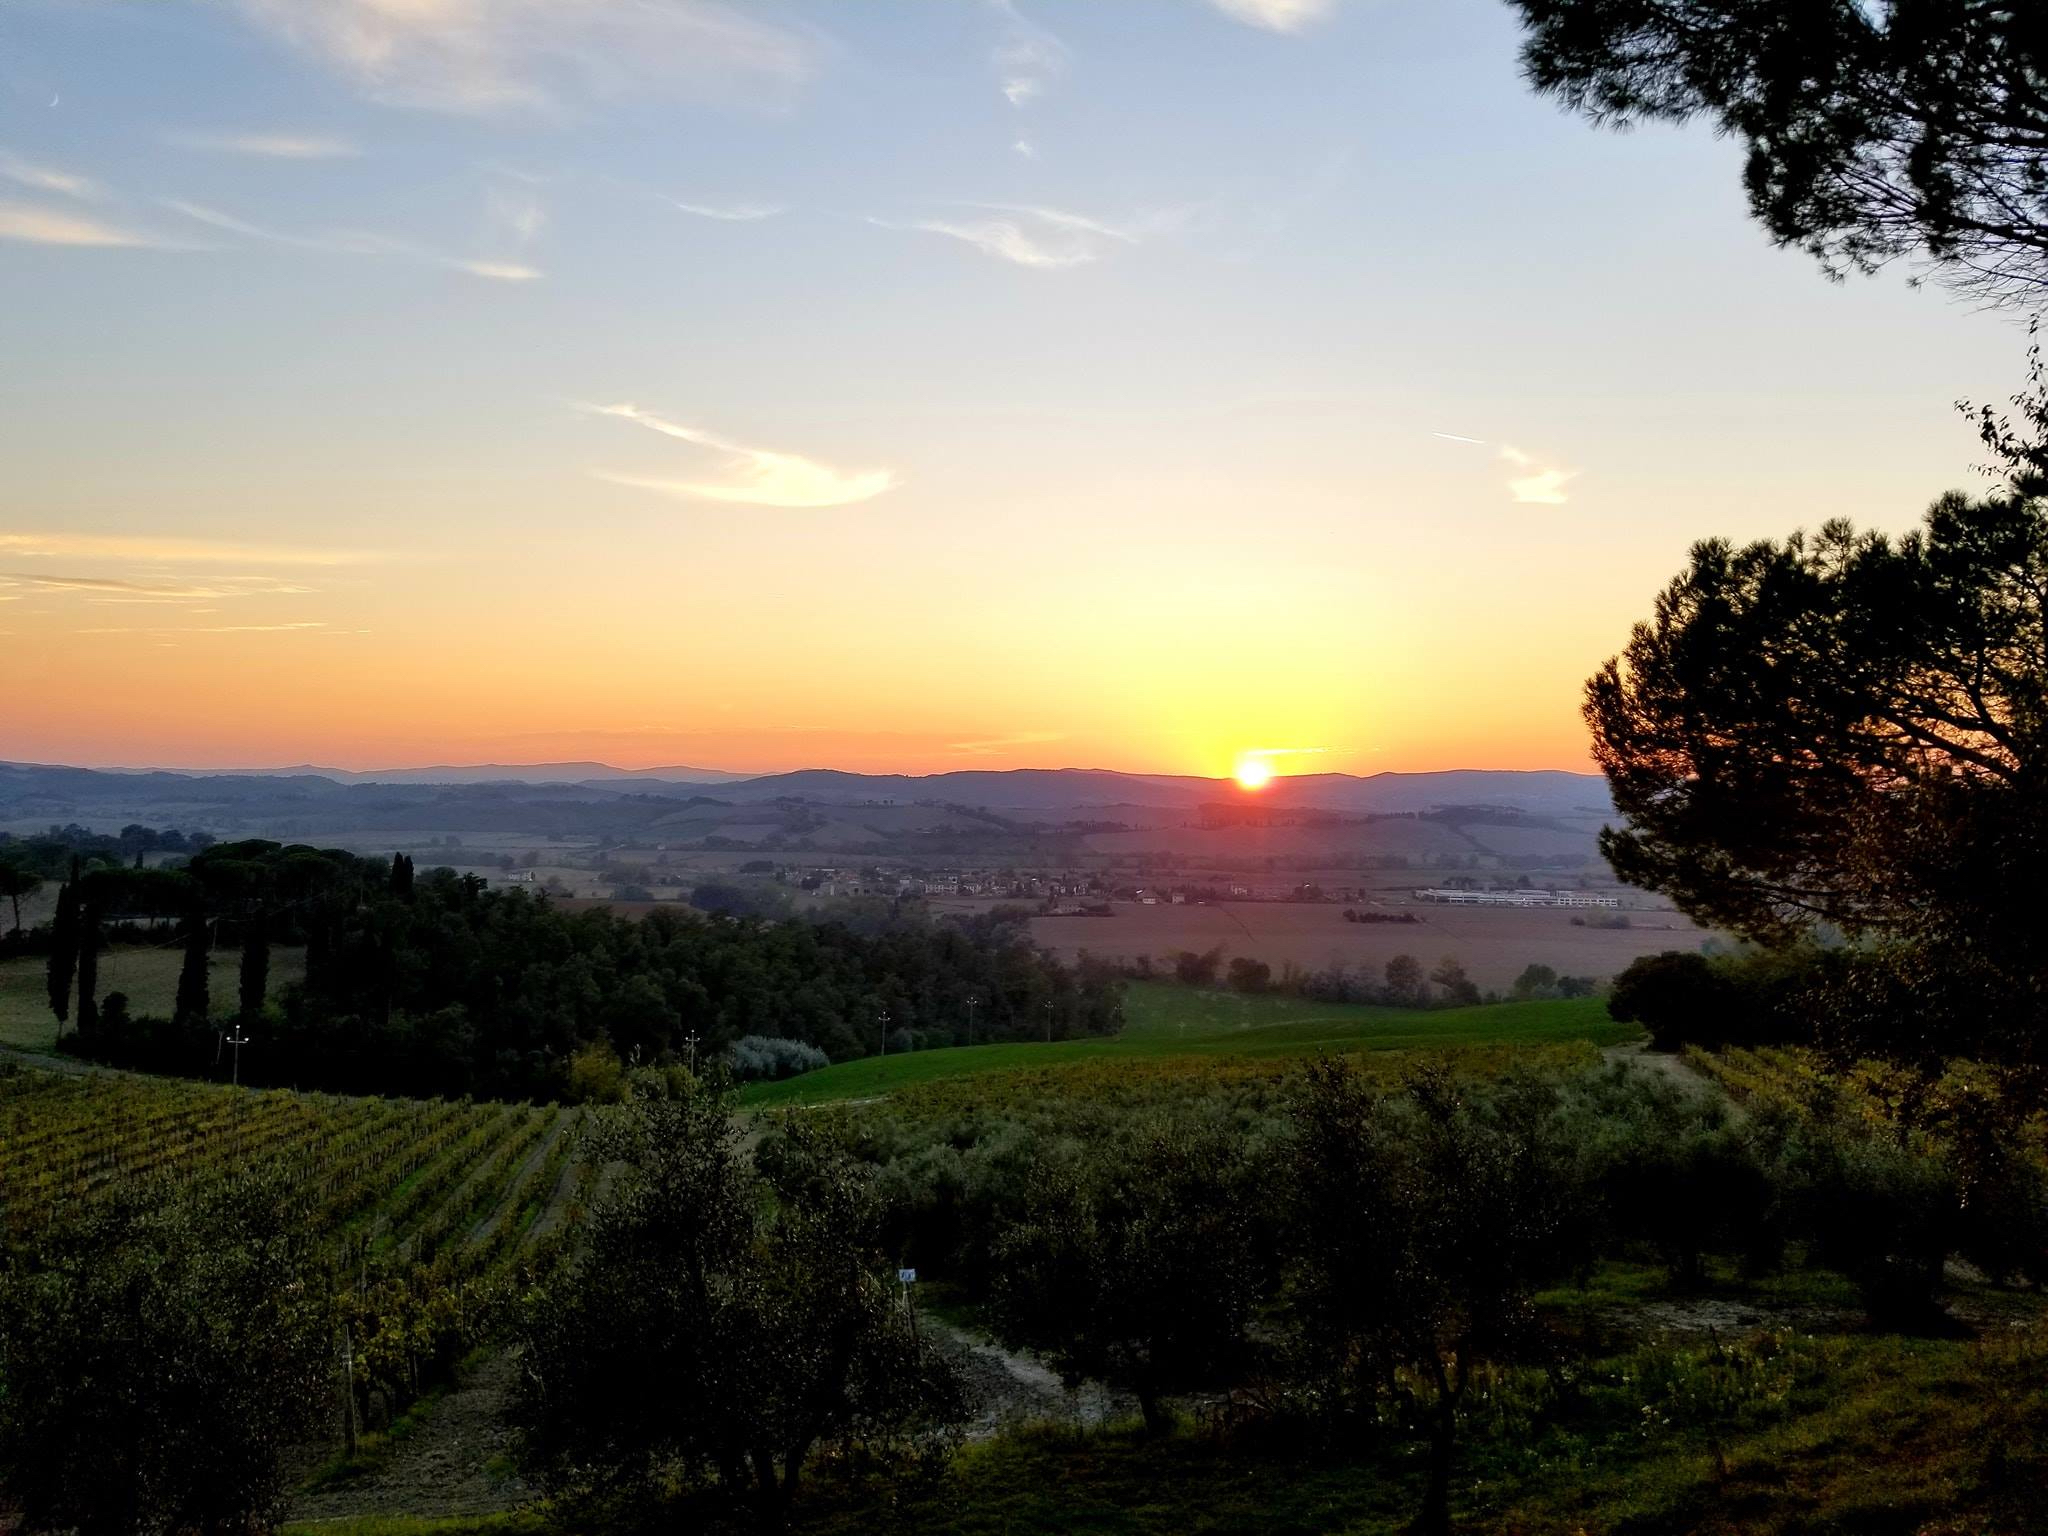 Perfection at dusk in the Tuscan countryside